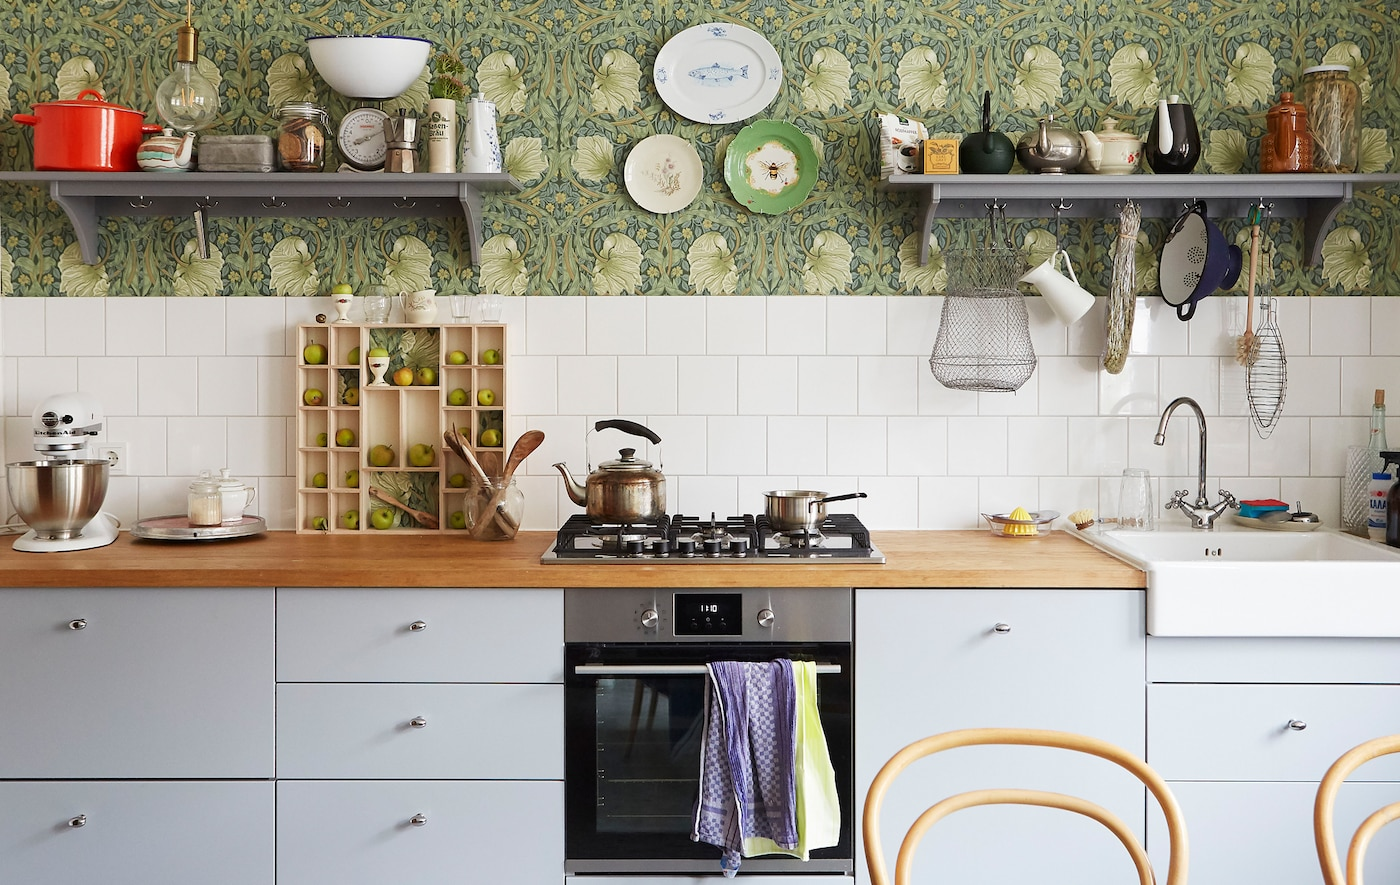 A kitchen with gray cabinets and built-in cooker, a wooden worktop and shelves on patterned floral wallpaper.